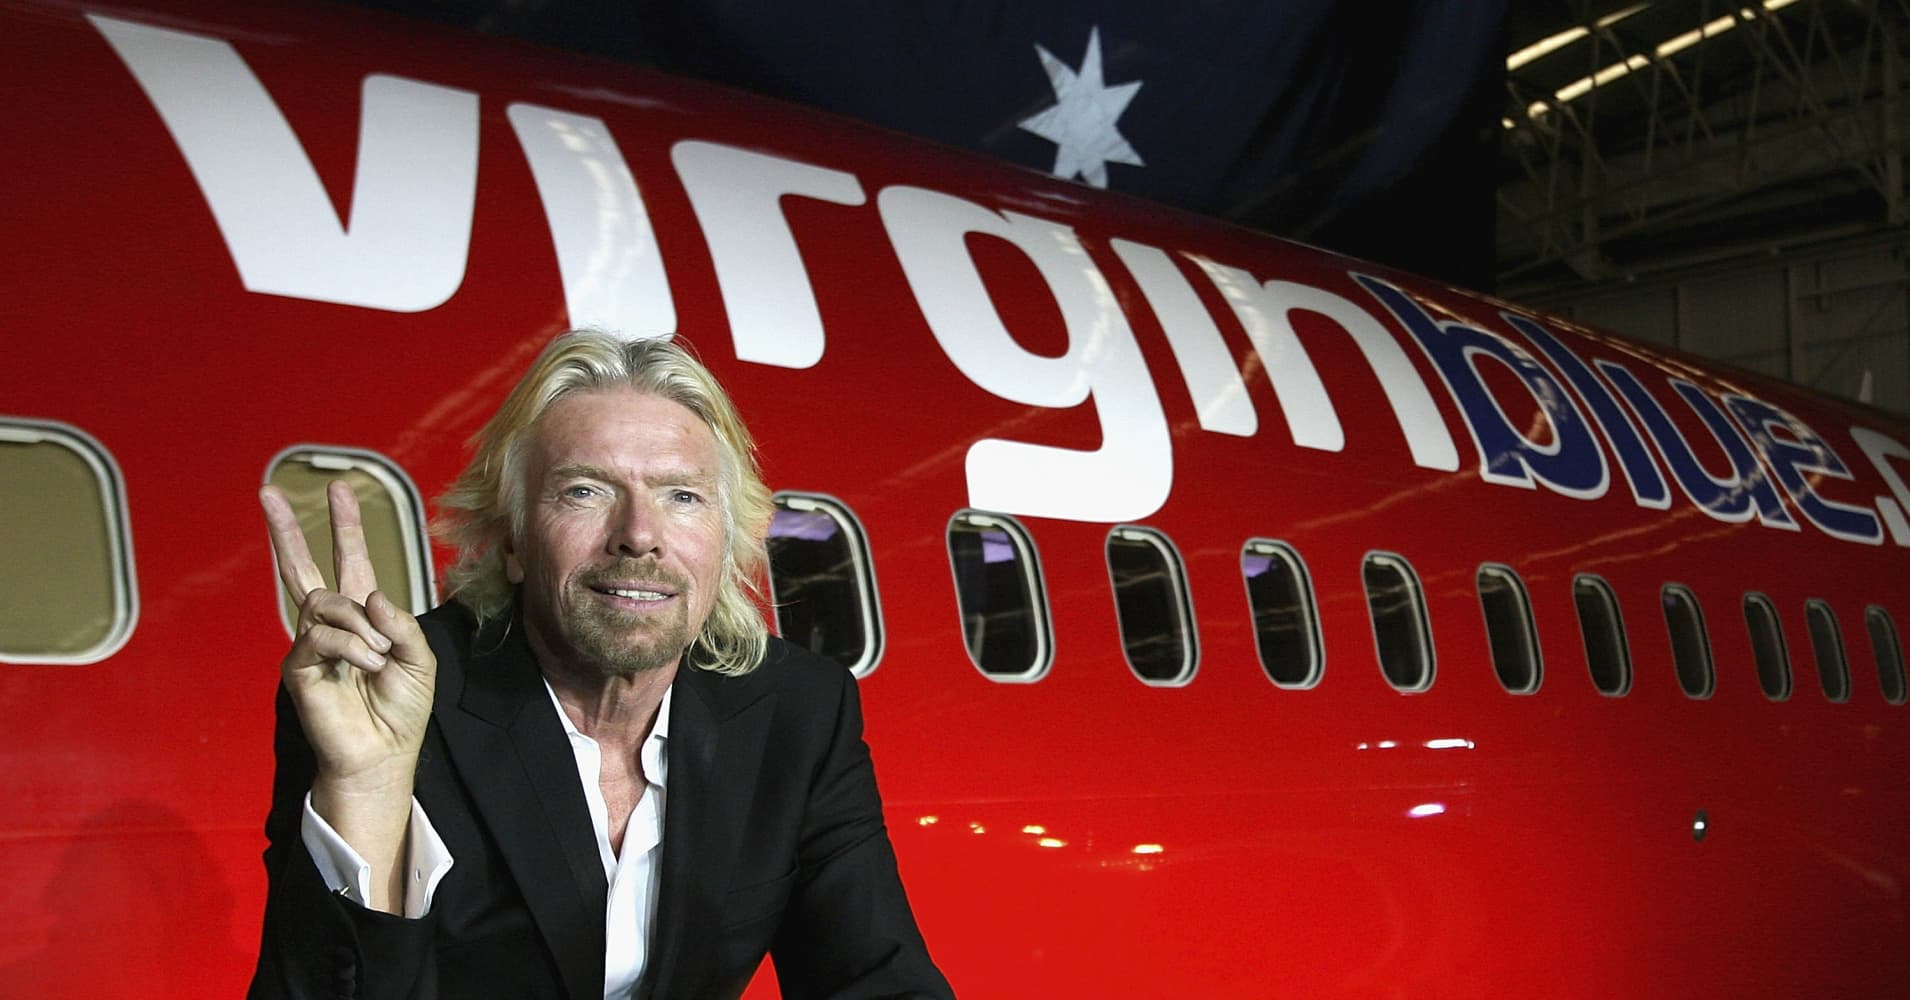 Virgin America to be no more following Alaska Airlines merger